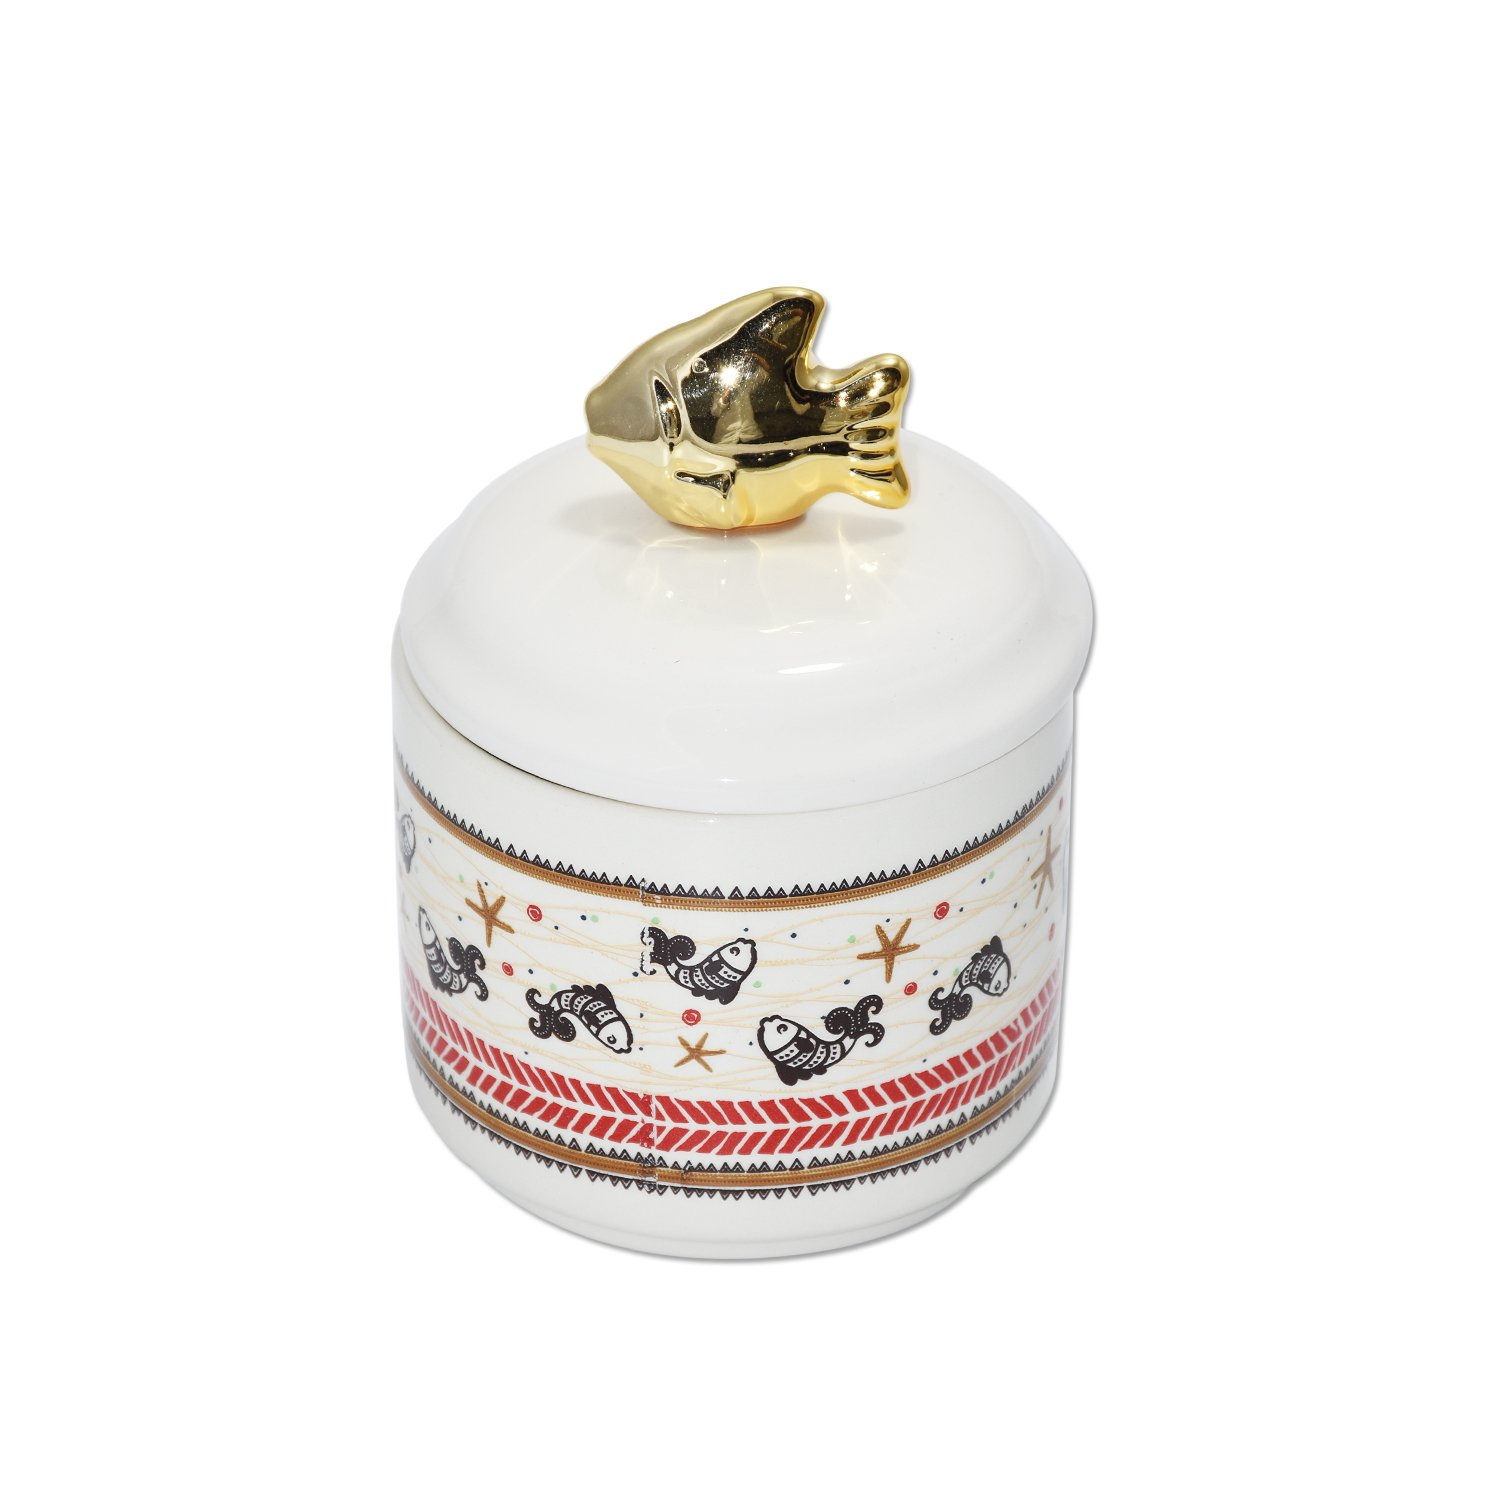 wdfpets 17.08 oz Ceramic Pet Food Treat Jar, Gold Fish Cover(NO AIR Tight),4 x 4 x 5.5 inches Cat Pet Food jar with Vivid Fish Decal(White)